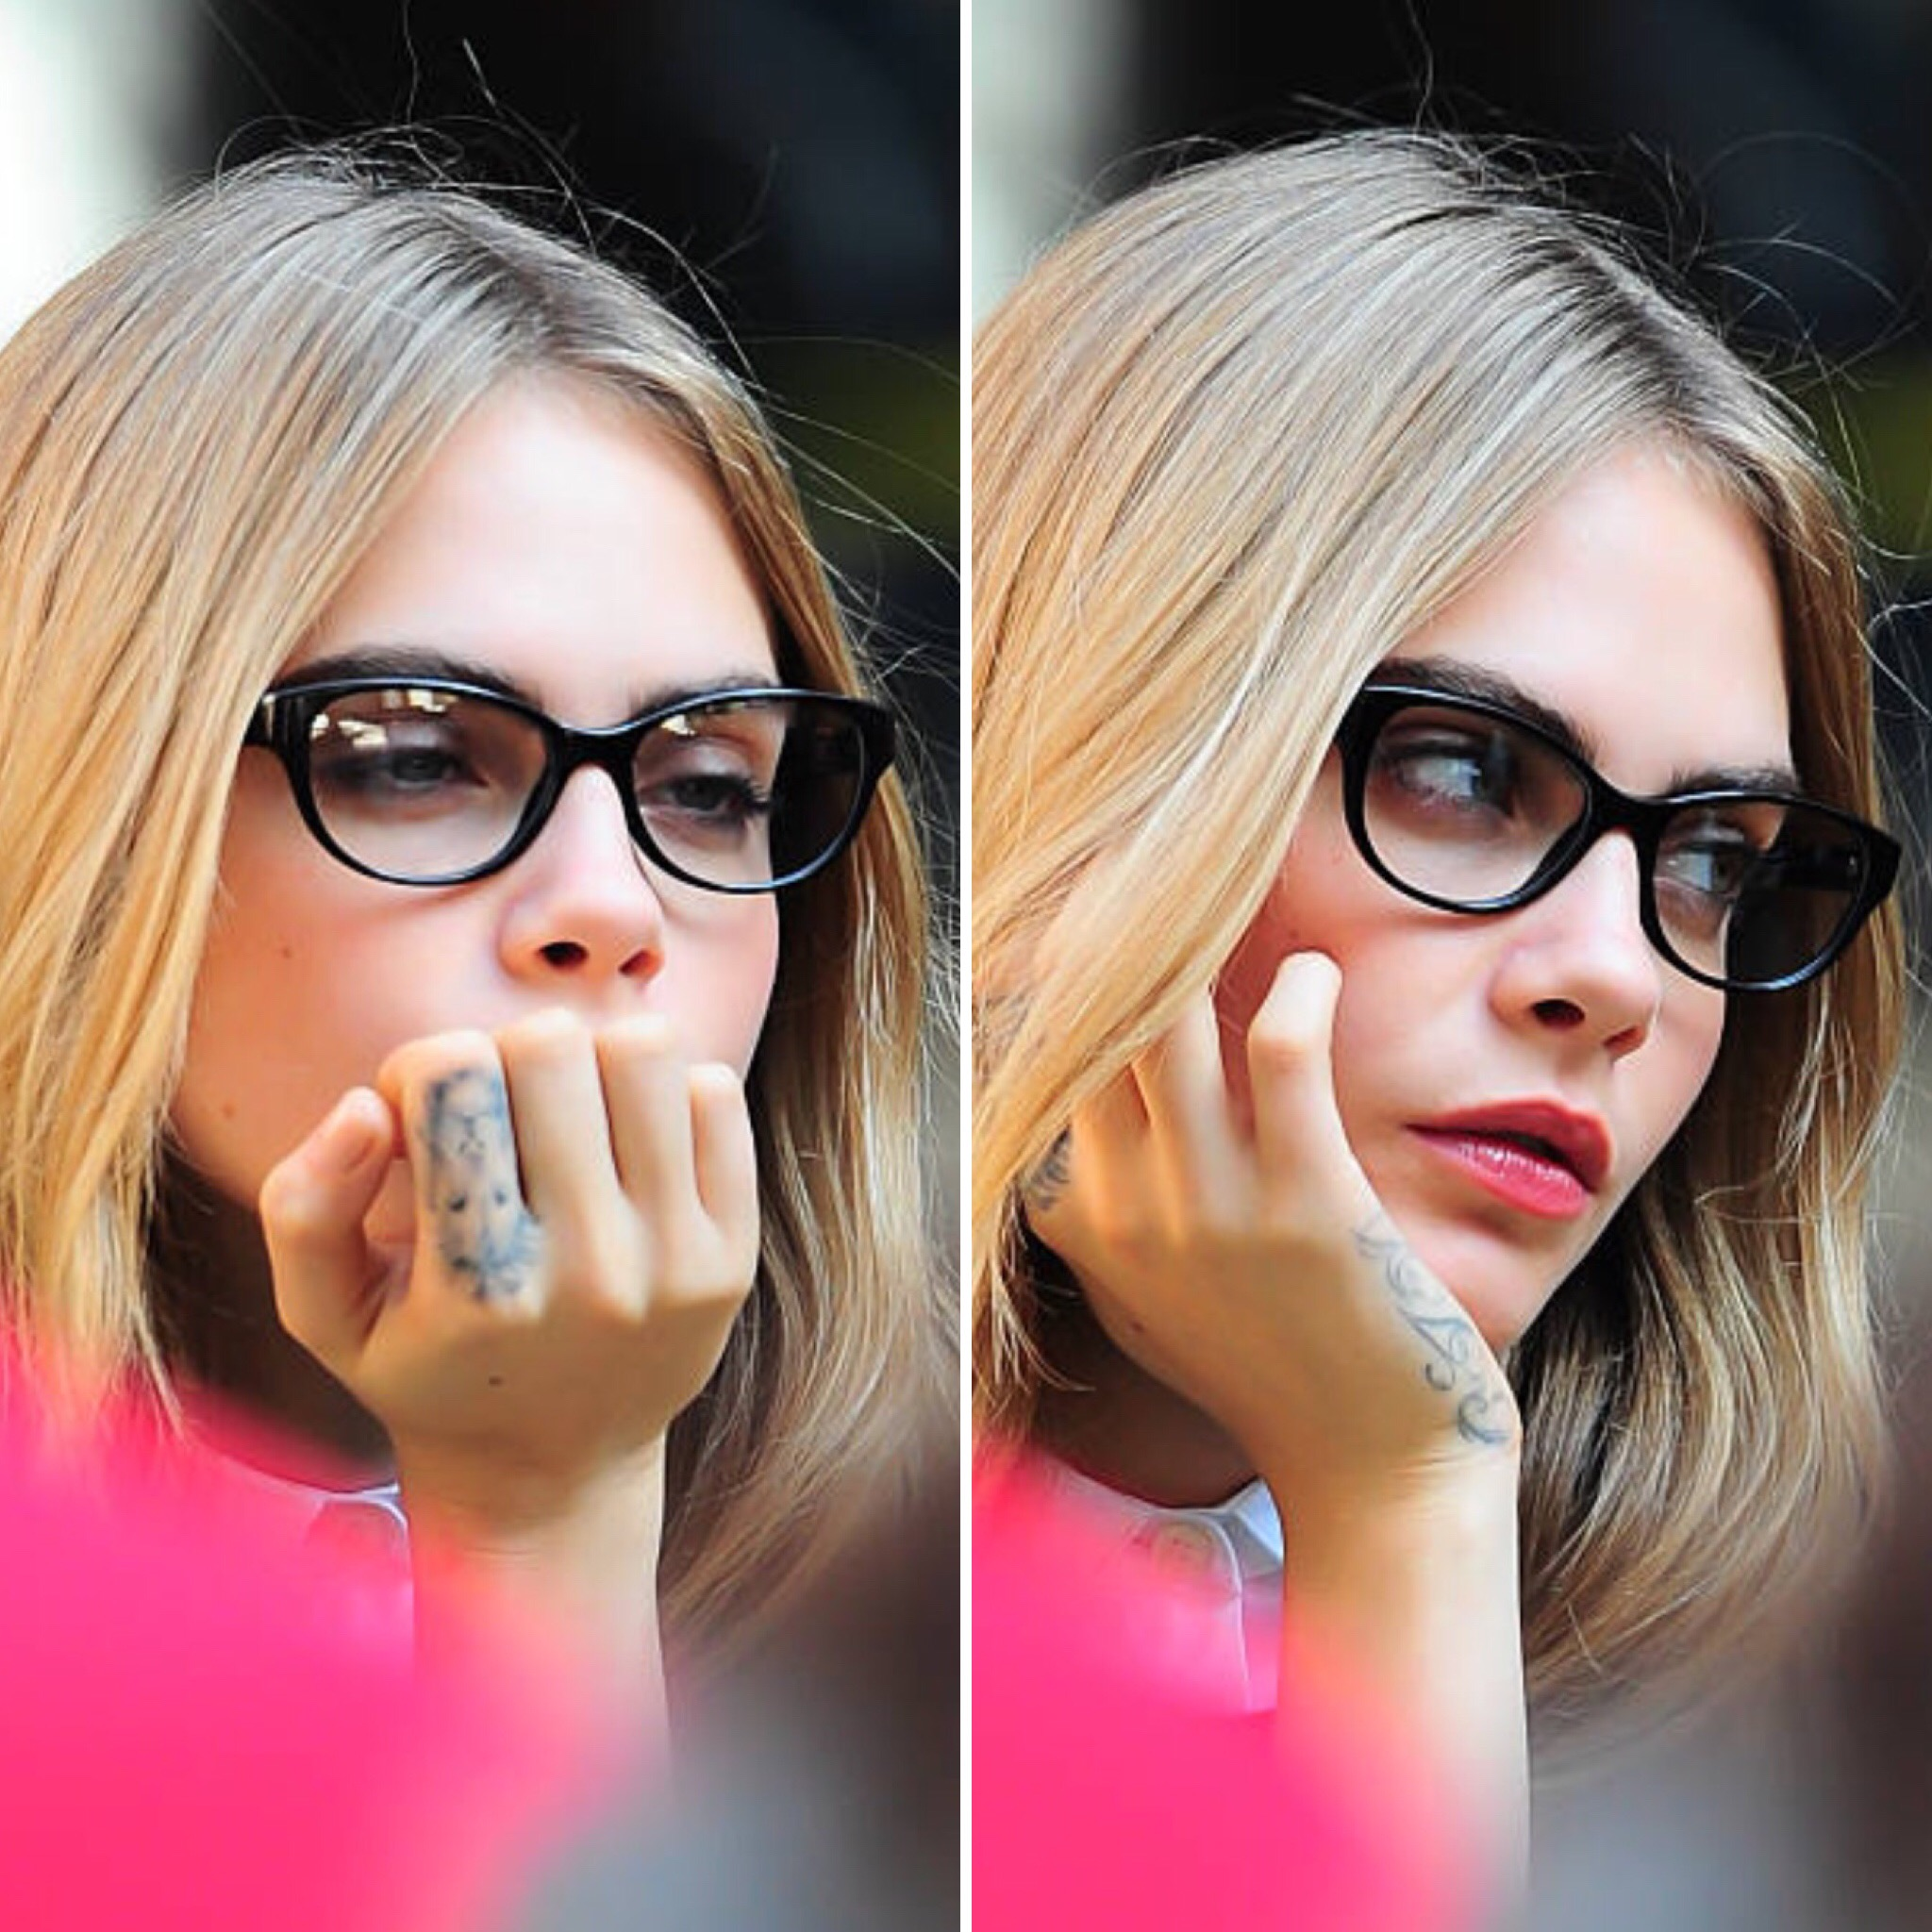 what-lizzy-loves-optometrist-makeup-tips-spectacle-wearers-glasses-cara-delevigne